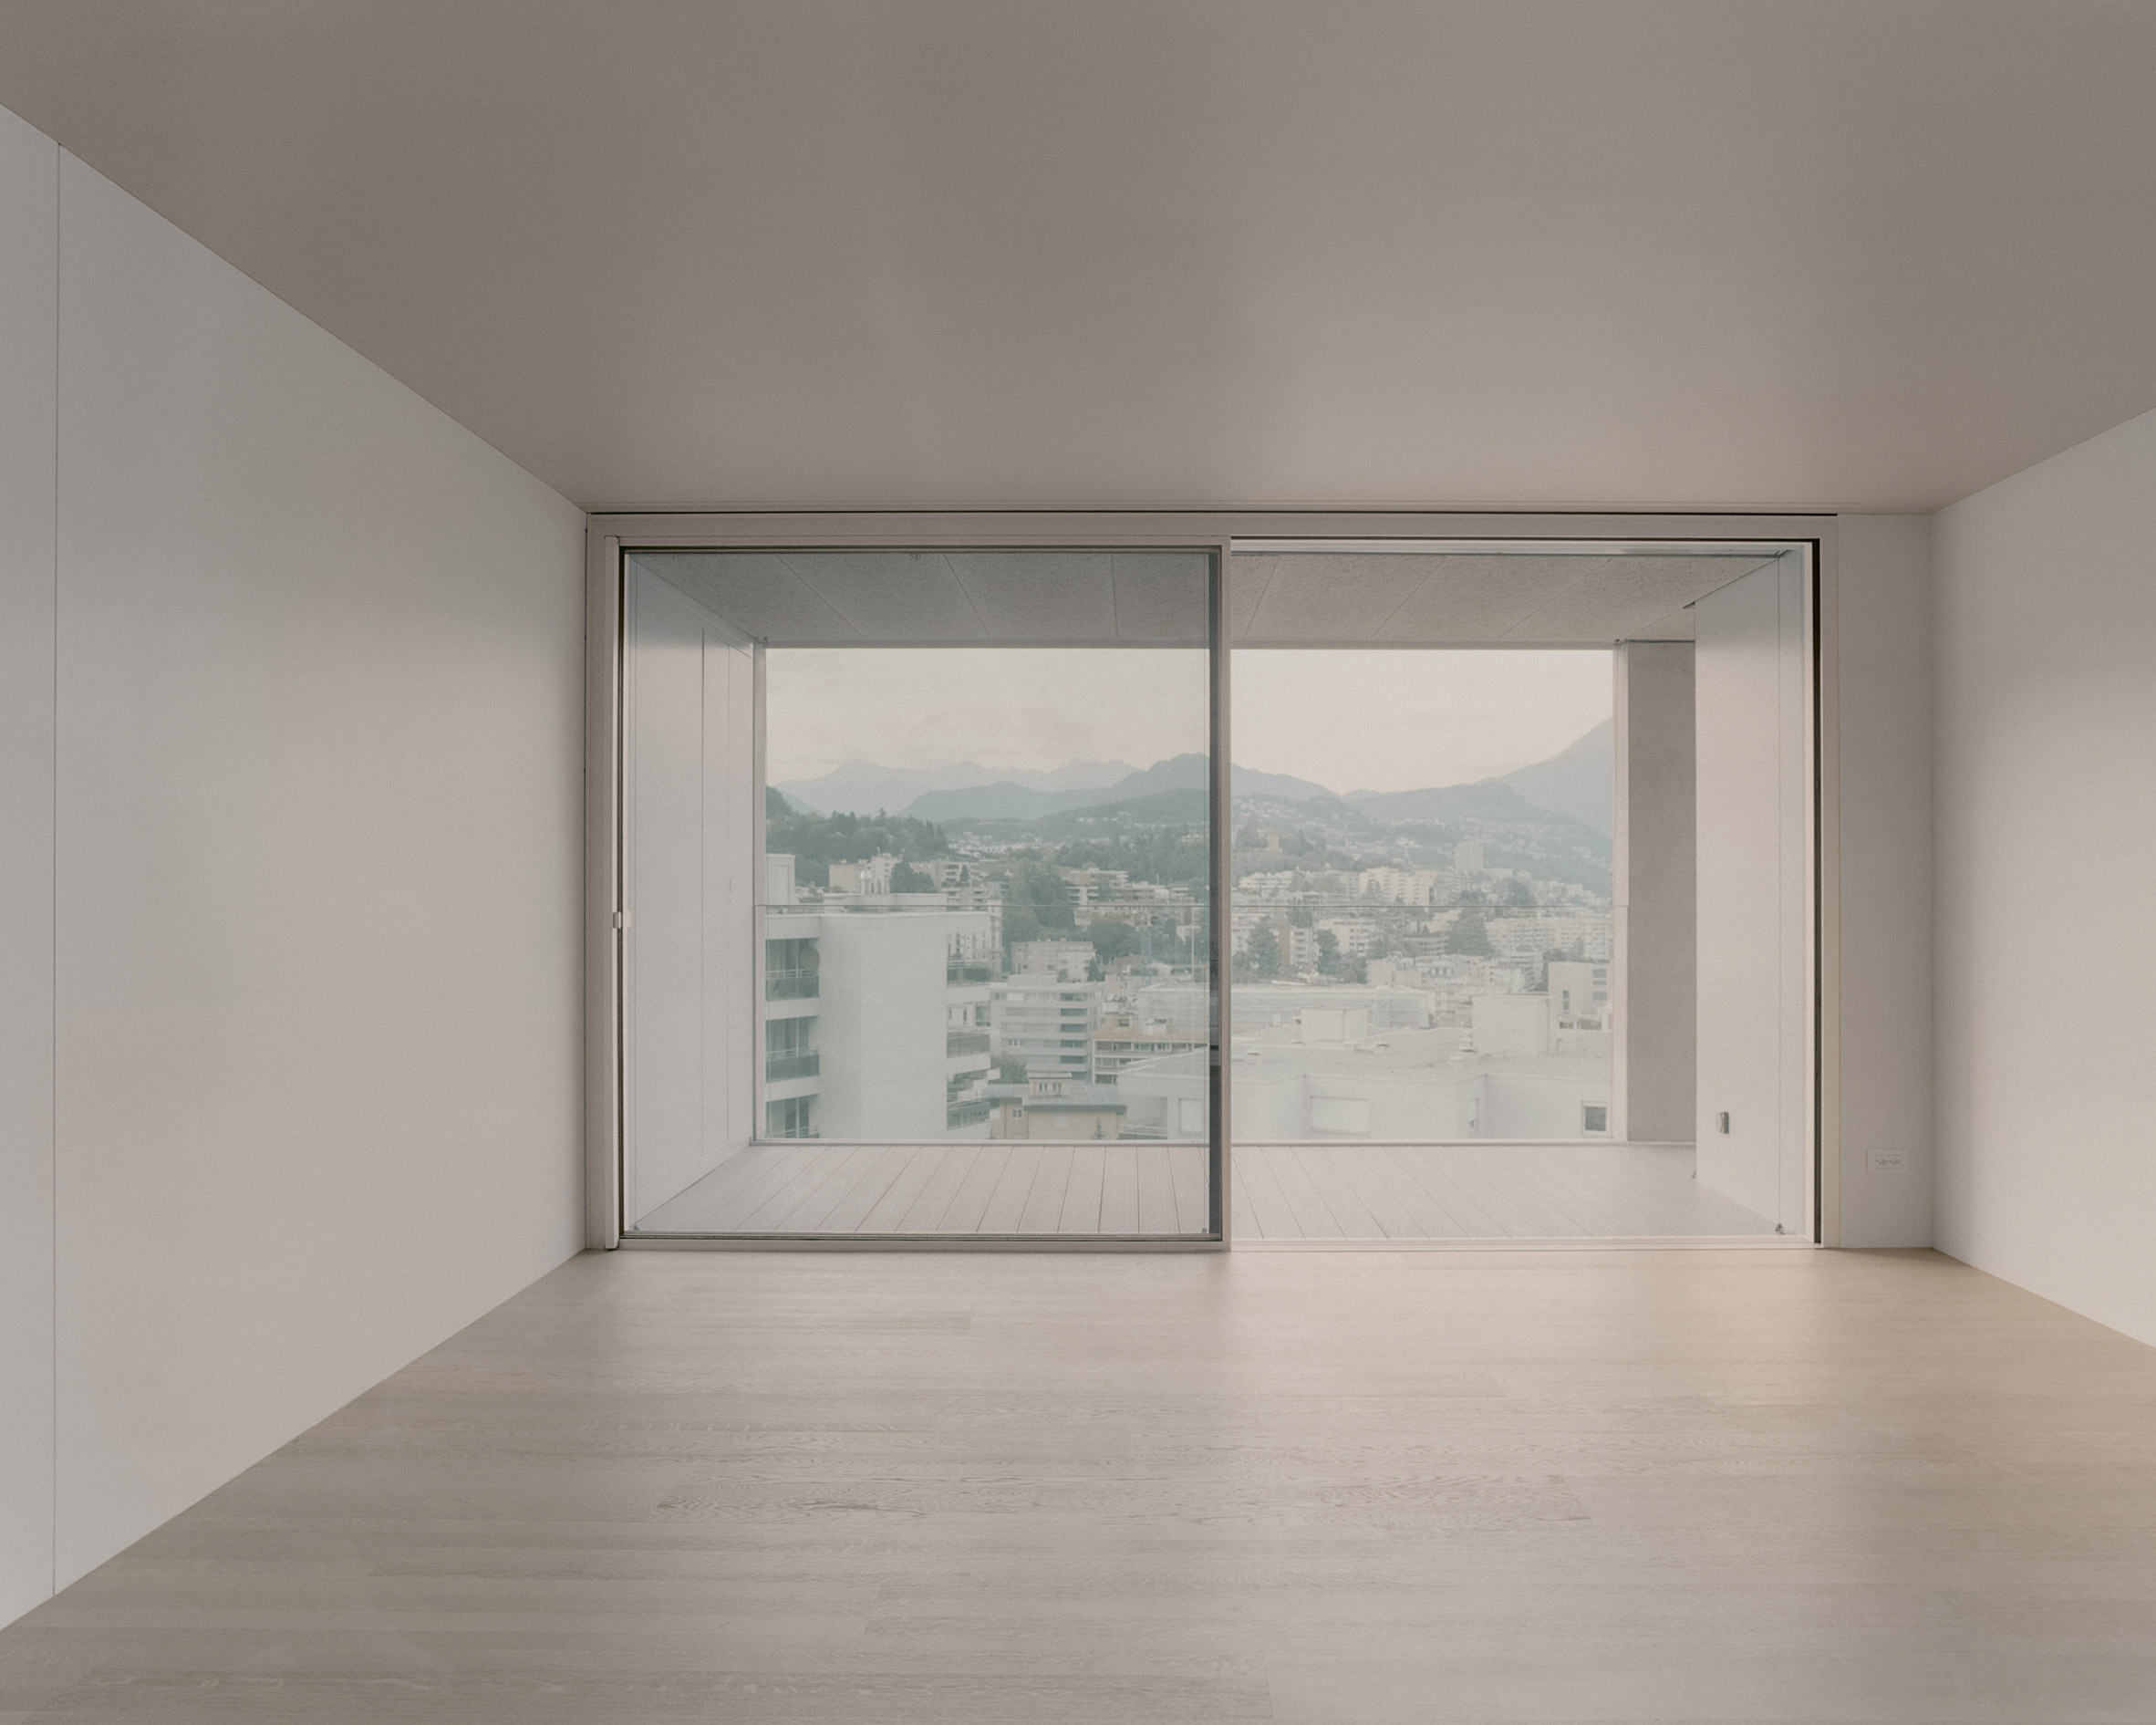 Apartment have views out to the mountain range